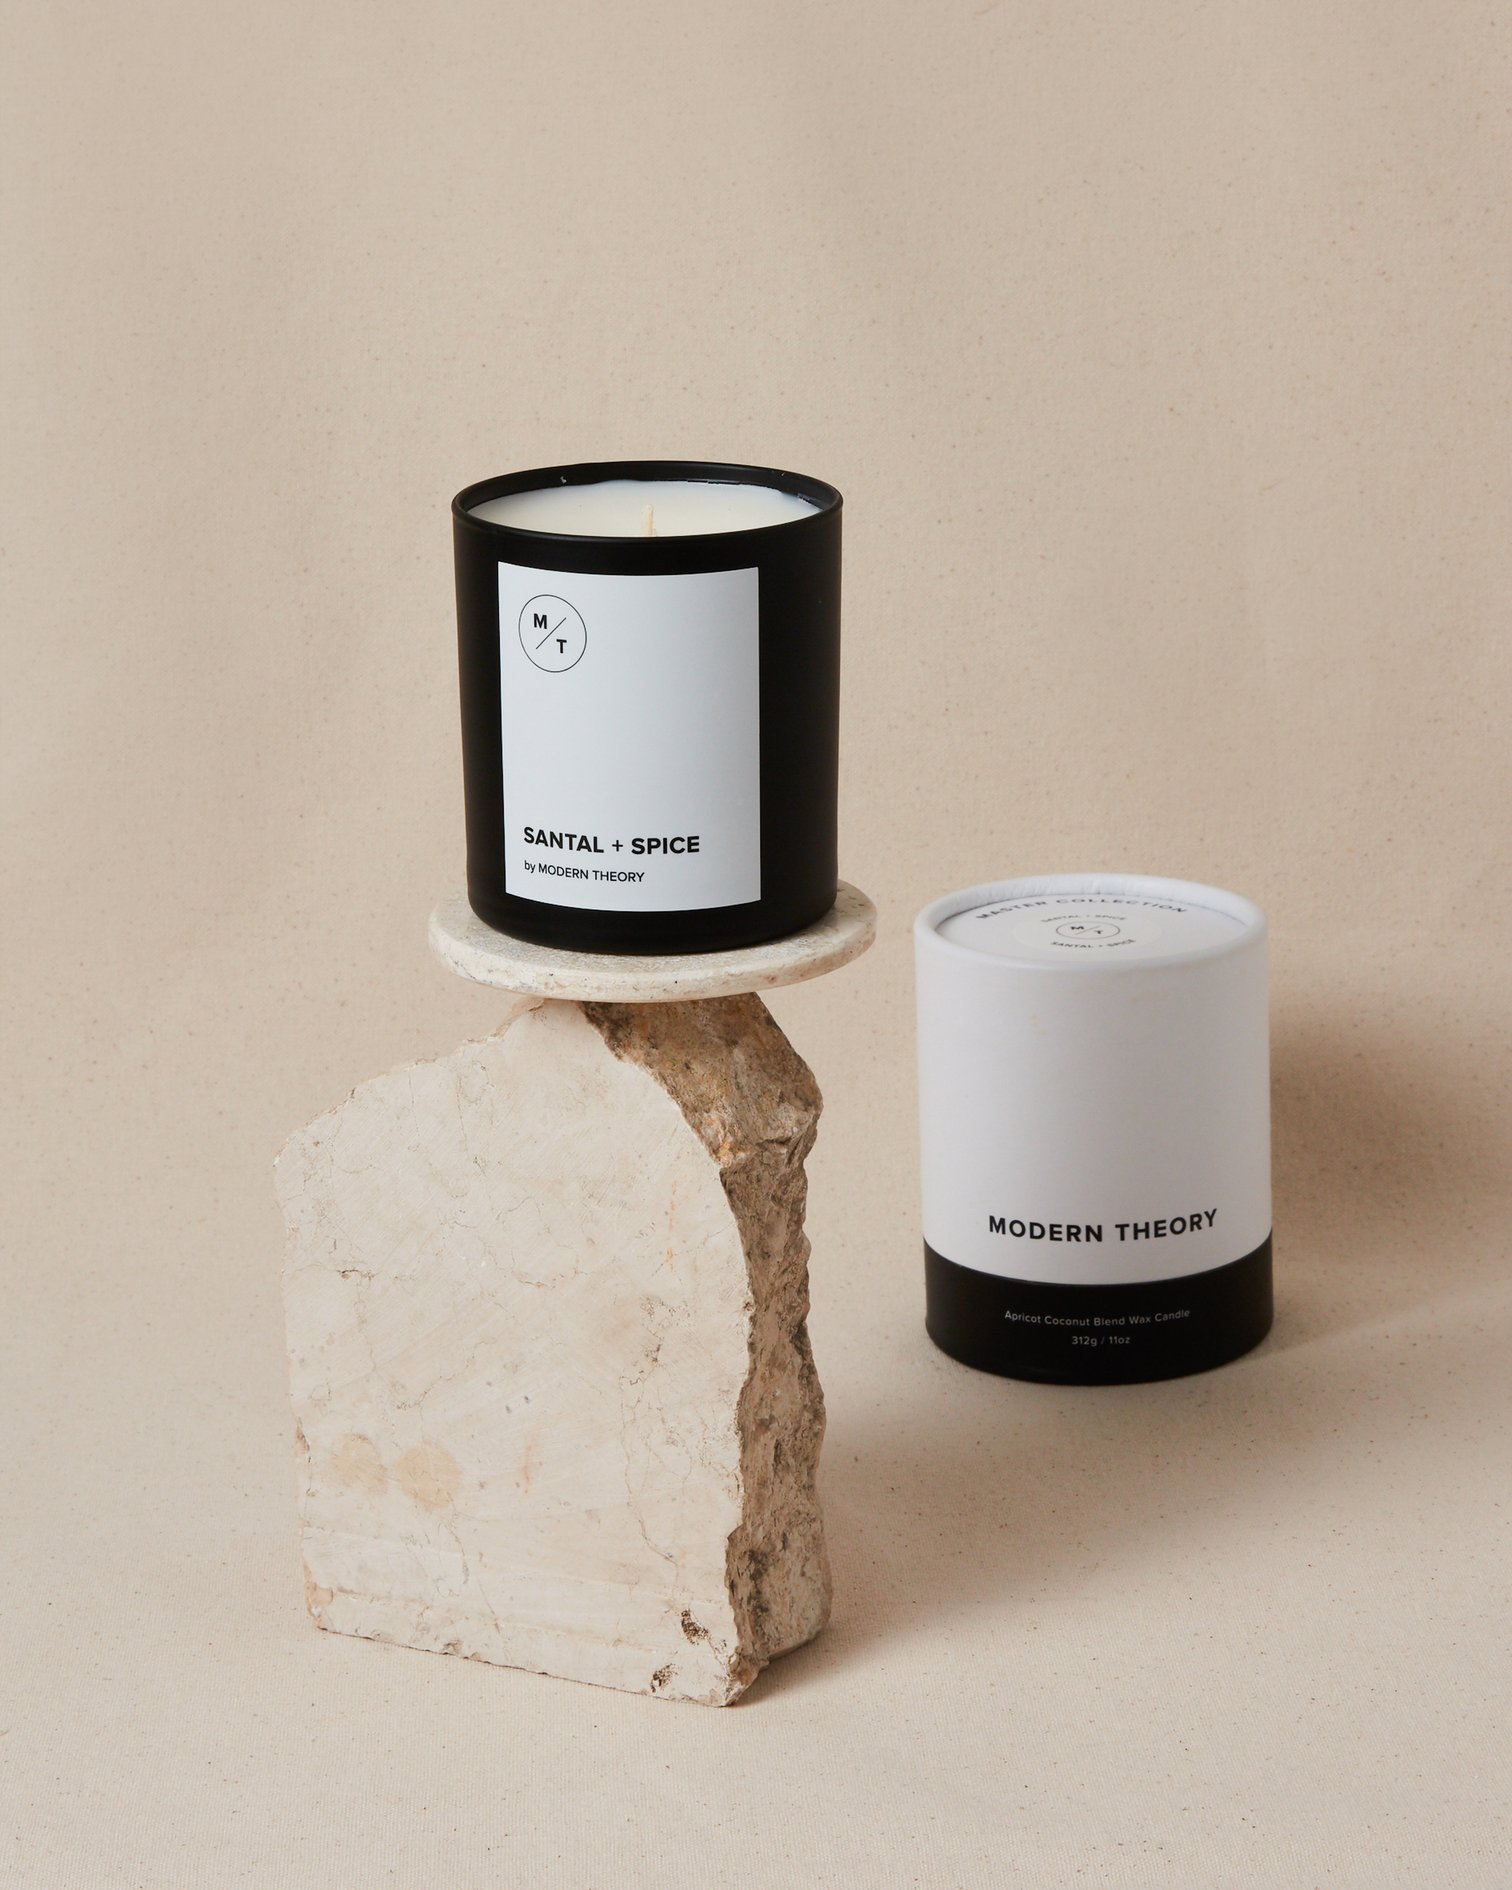 Santal + Spice Candle by Modern Theory